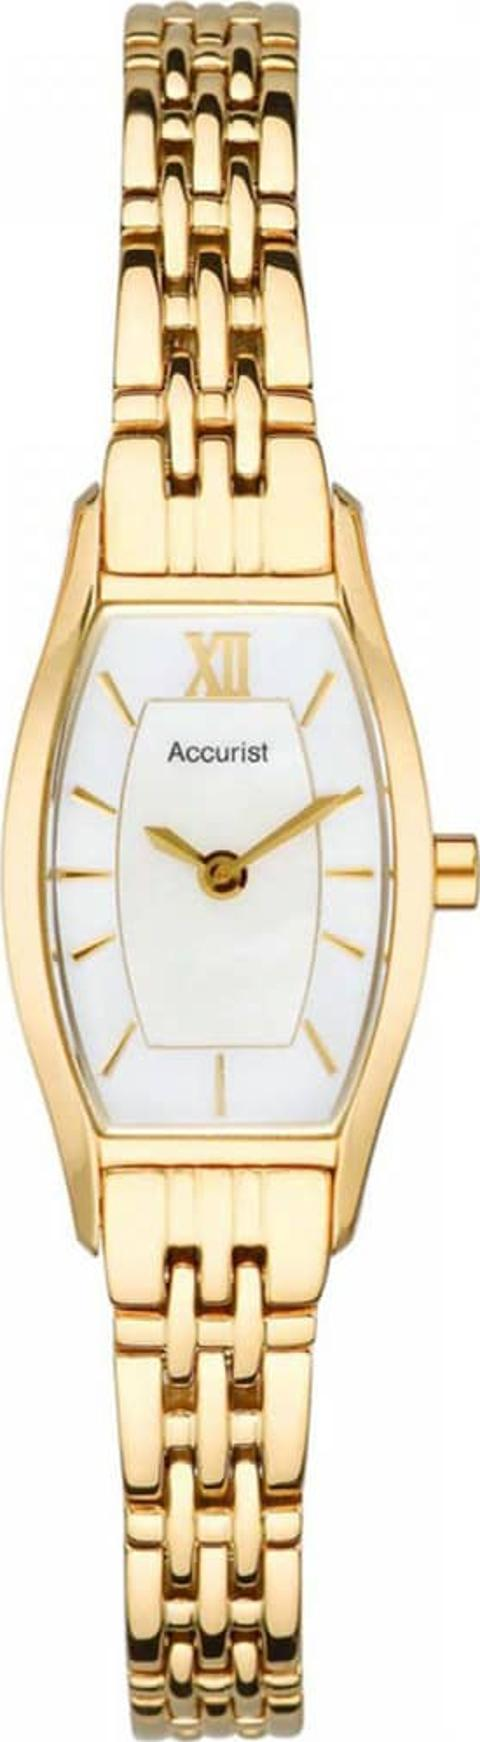 cfea2dfba Shop Accurist Watches for Women - Obsessory